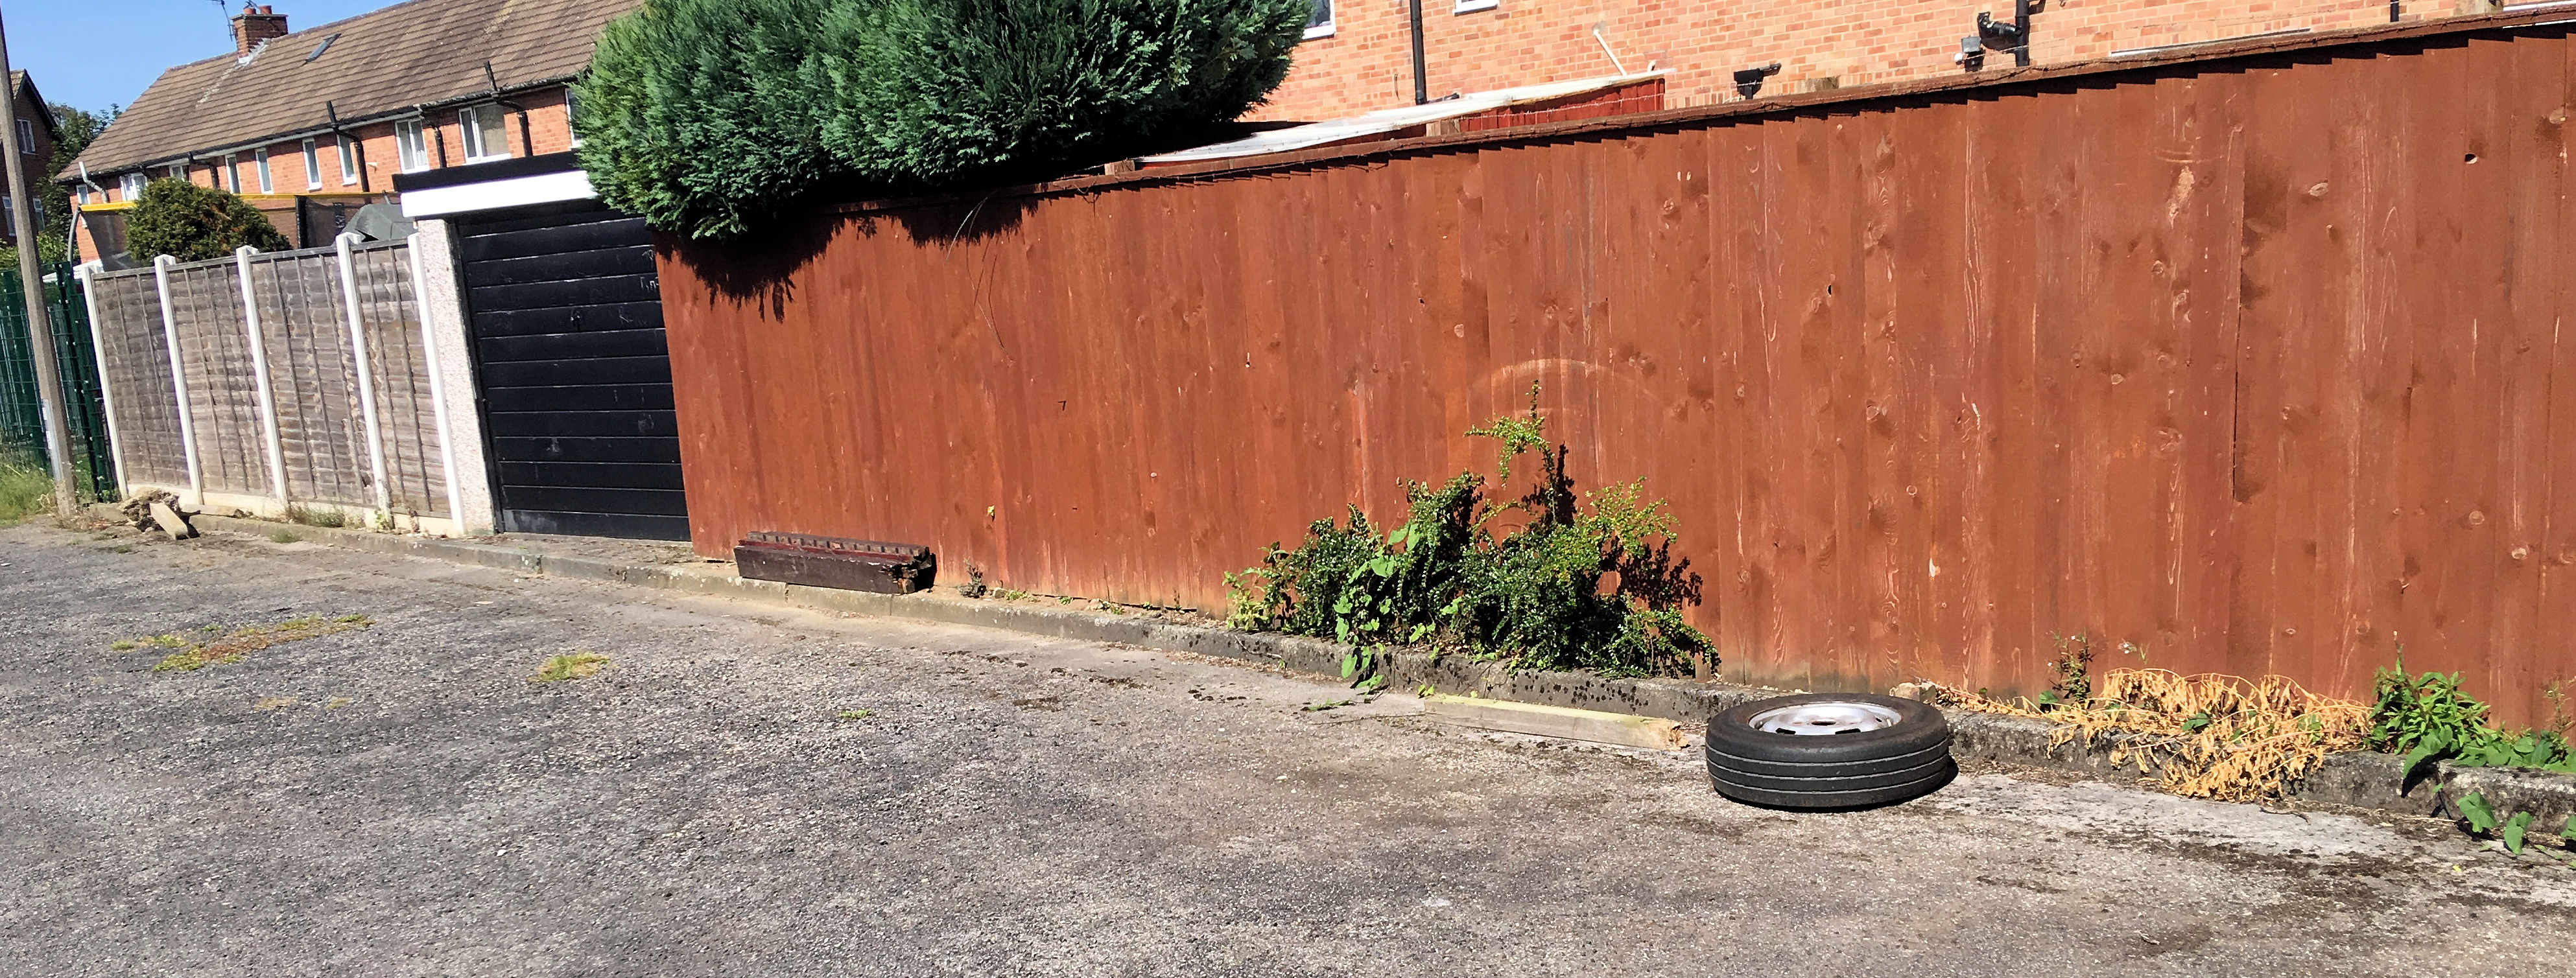 Green Lane garage area dumped spare wheel